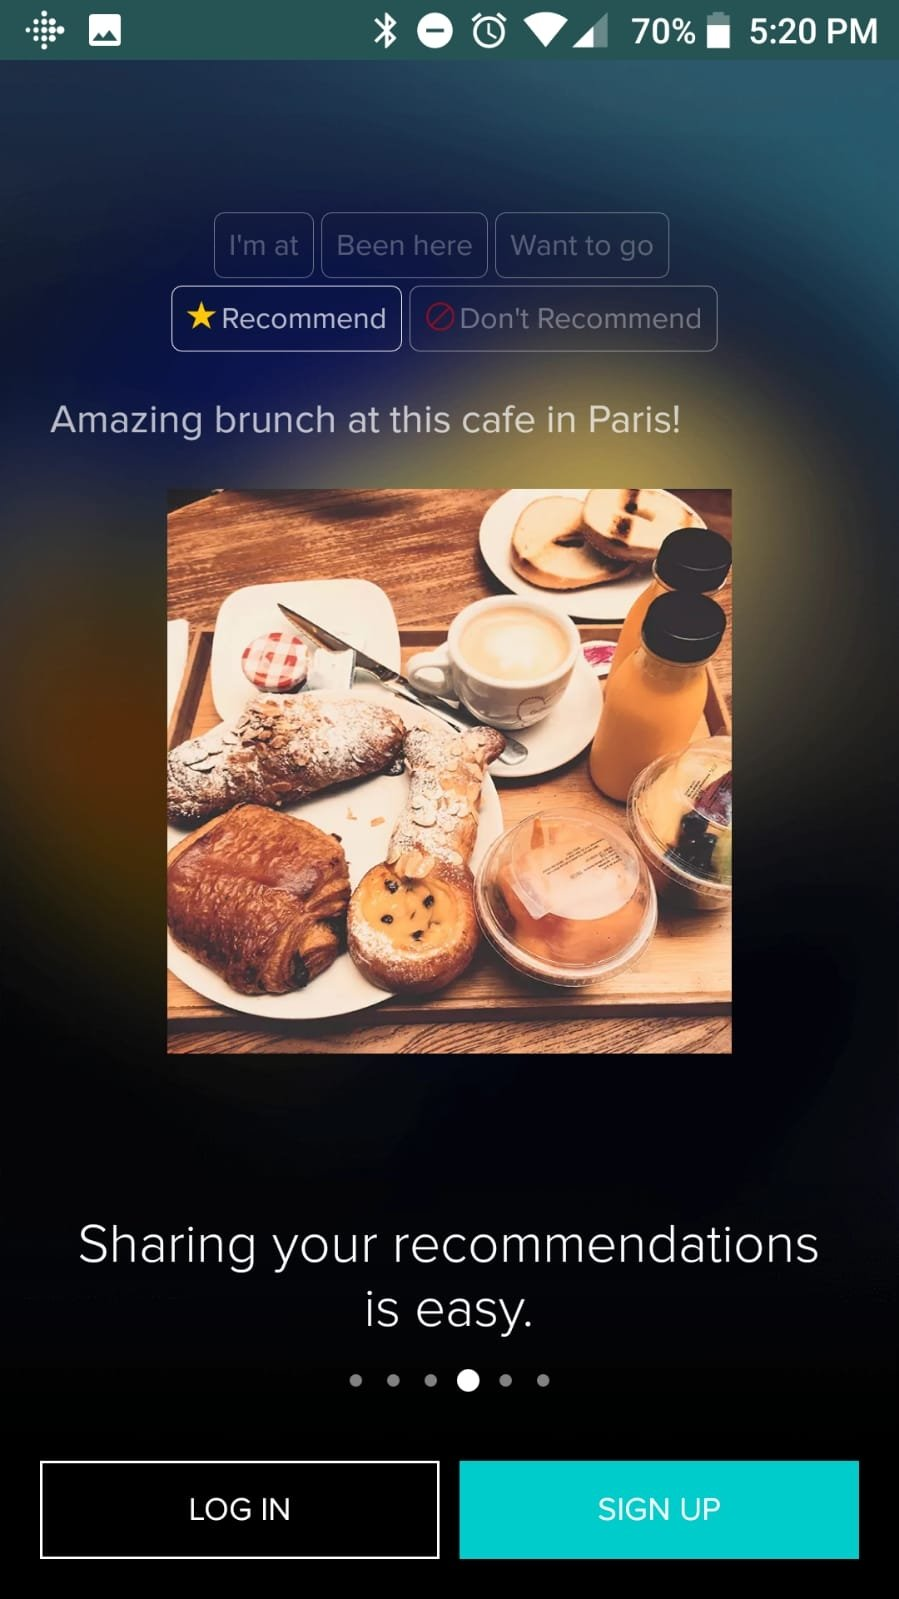 Vero - True Social 1 4 4 - Download for Android APK Free